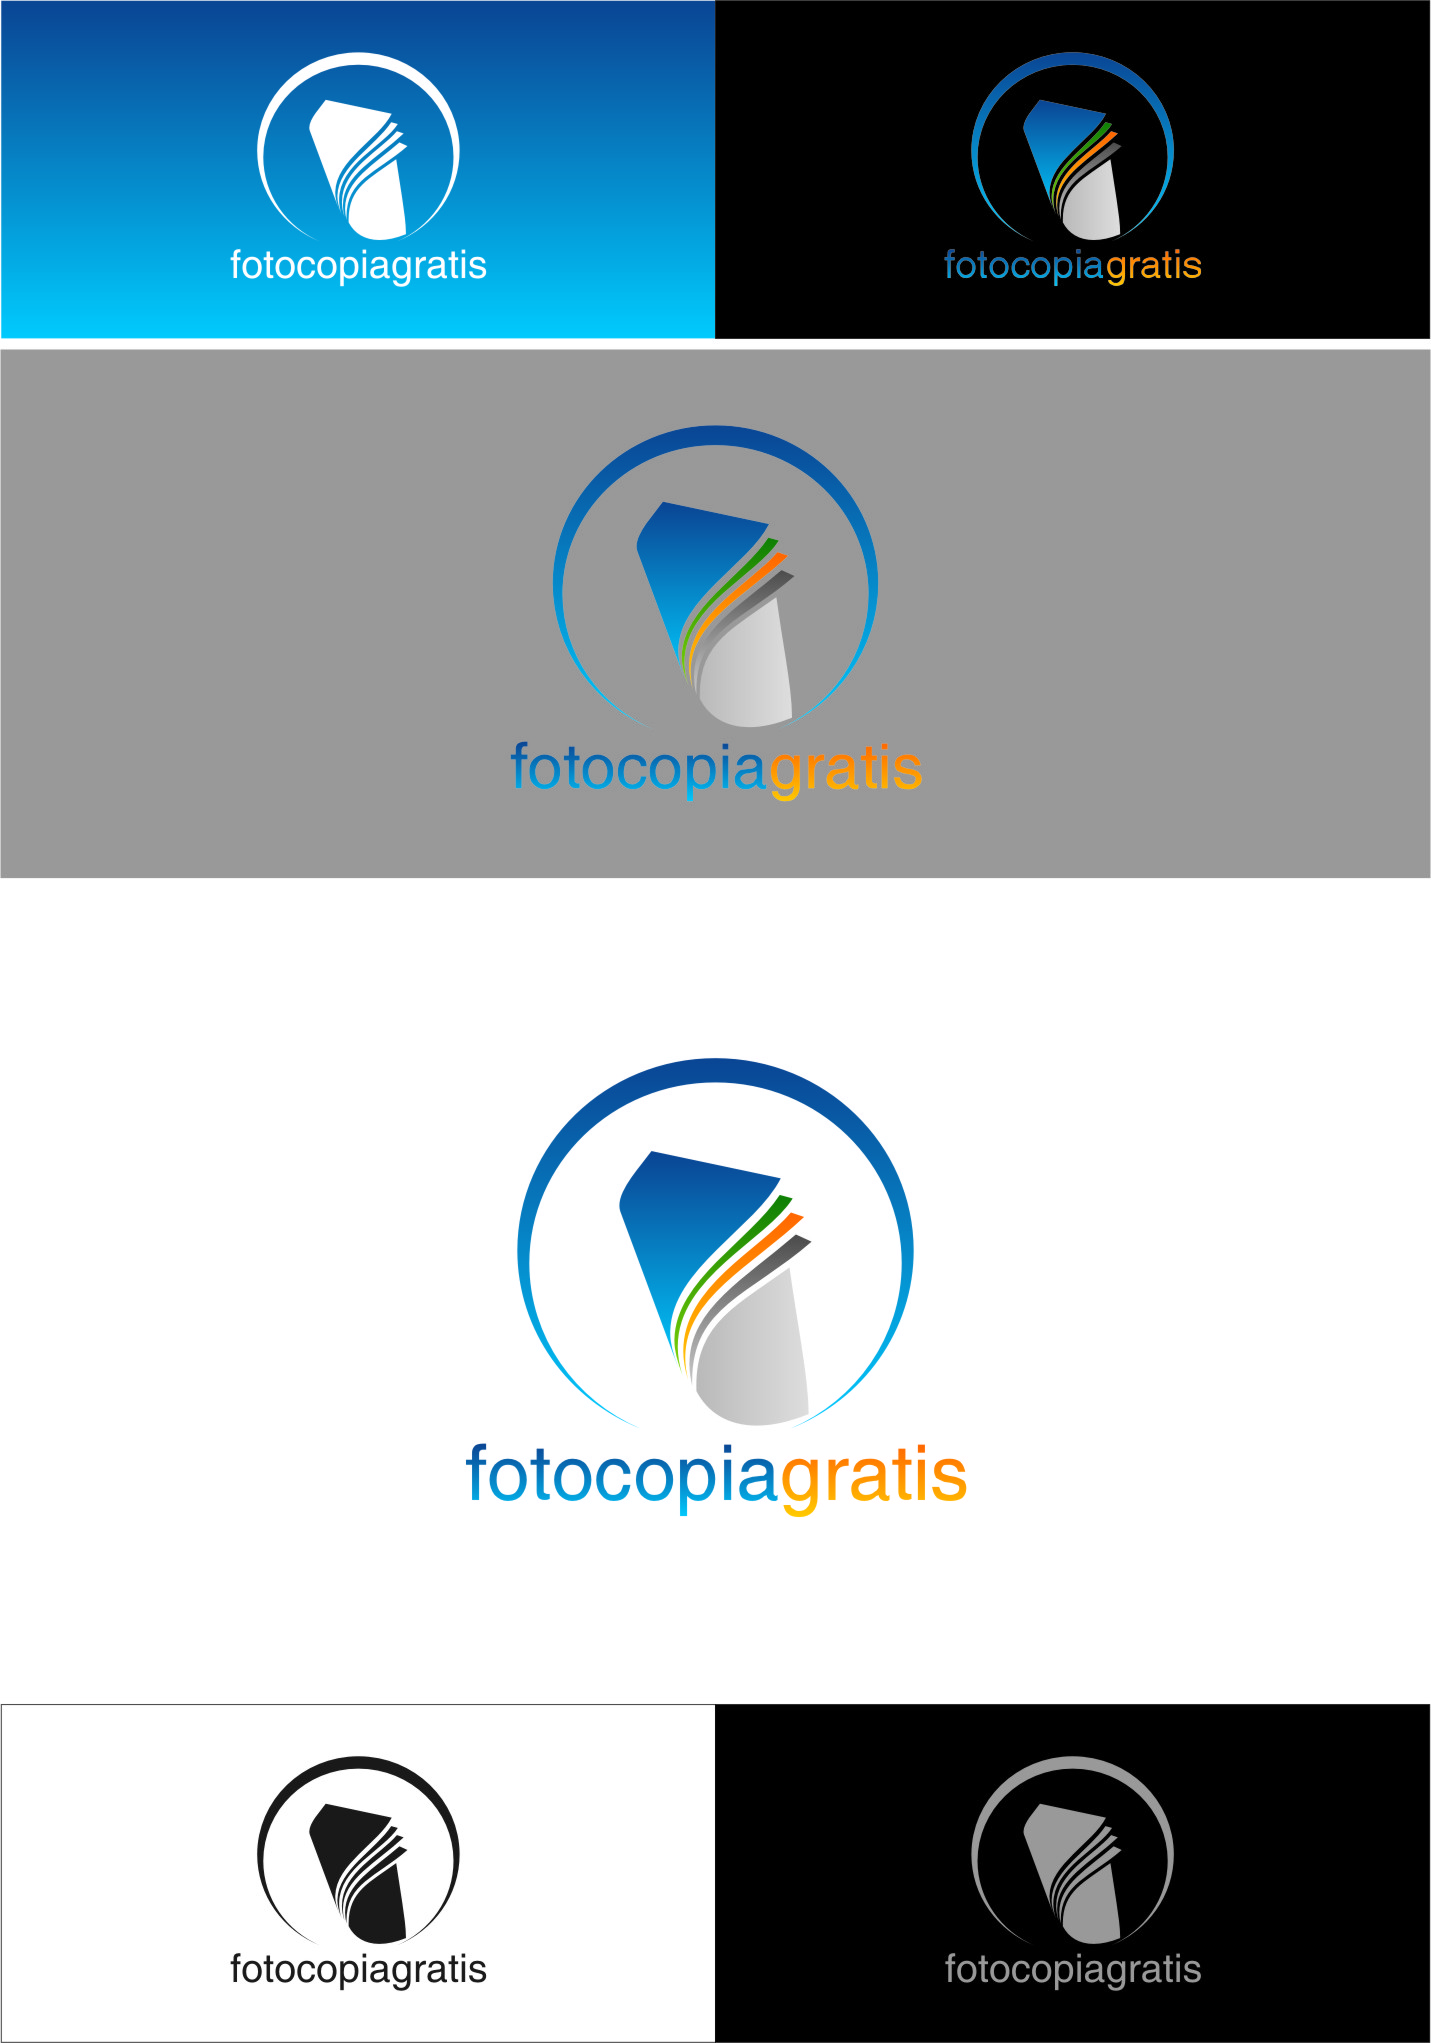 Logo Design by Ngepet_art - Entry No. 79 in the Logo Design Contest Inspiring Logo Design for Fotocopiagratis.